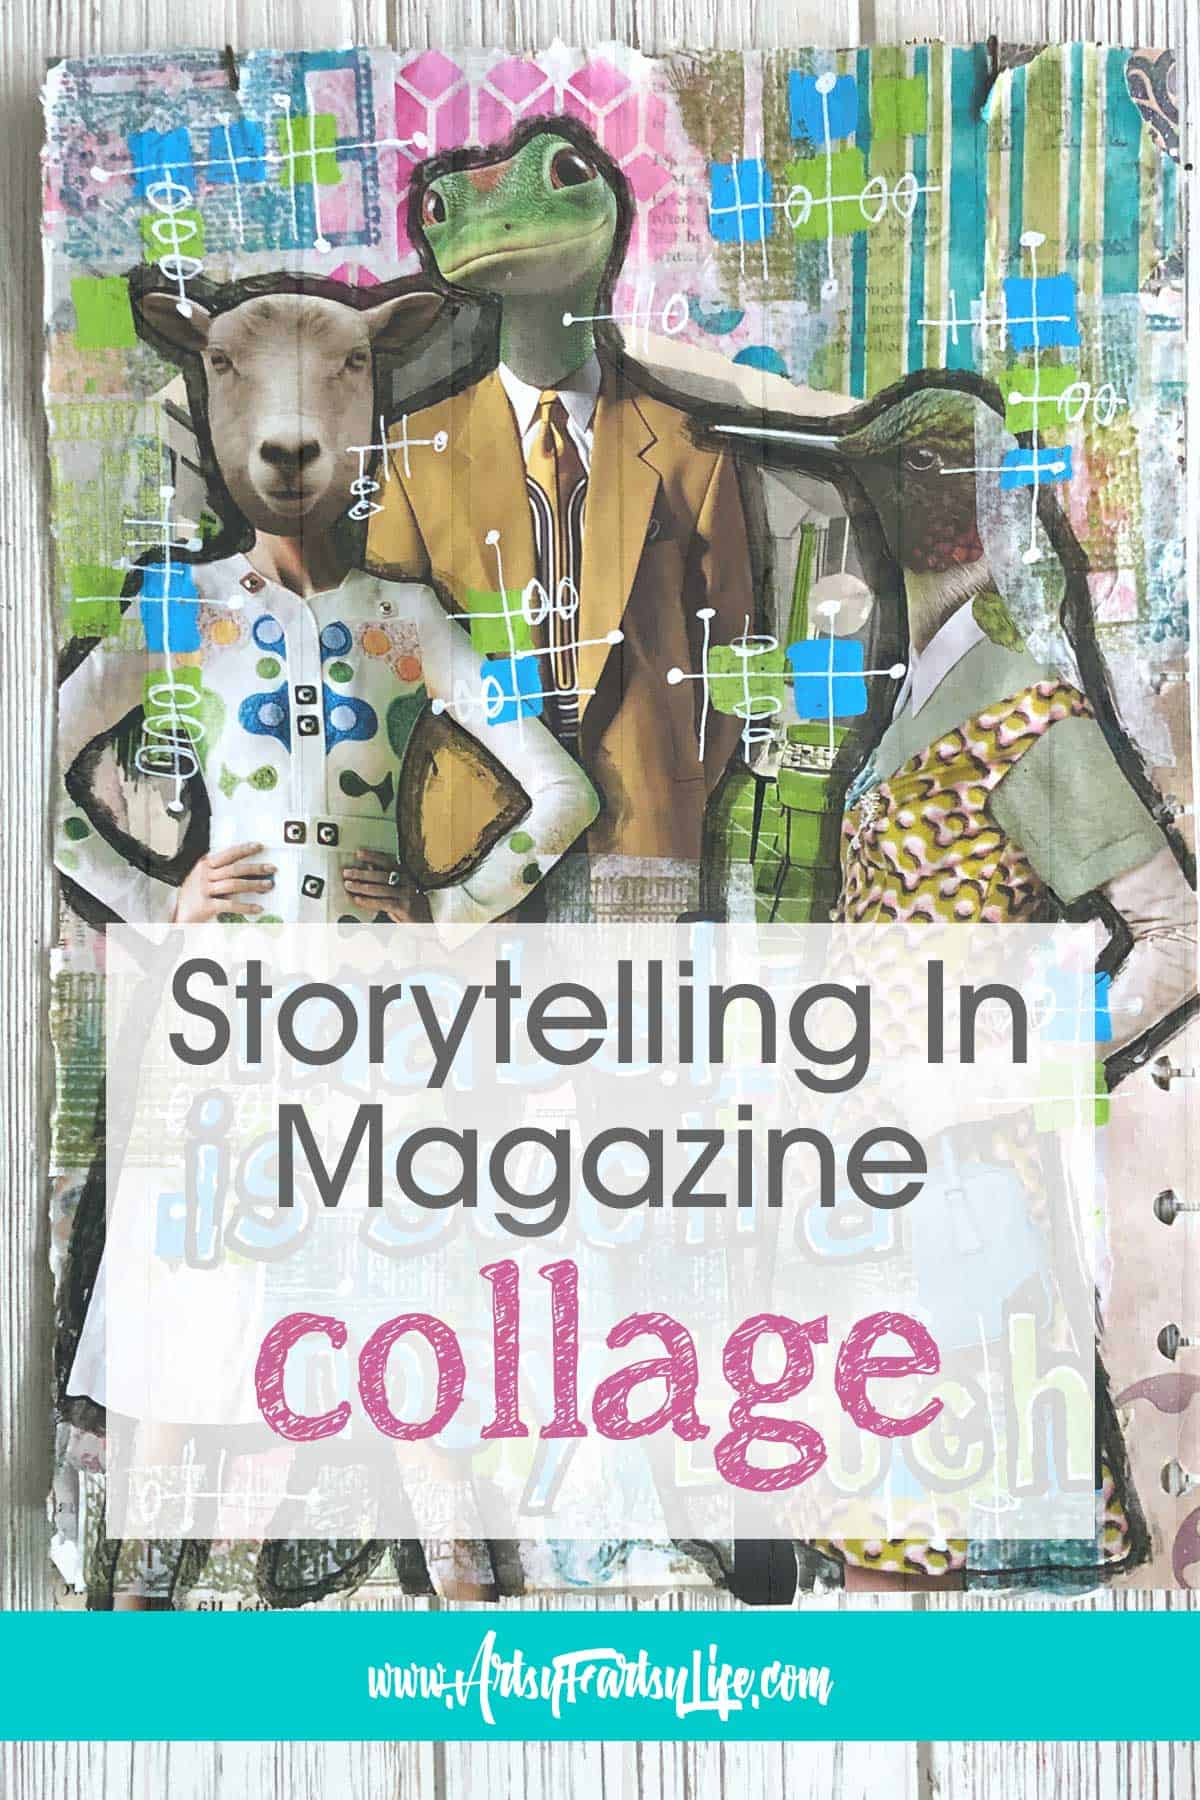 Storytelling In Magazine Collage and Mixed Media Art